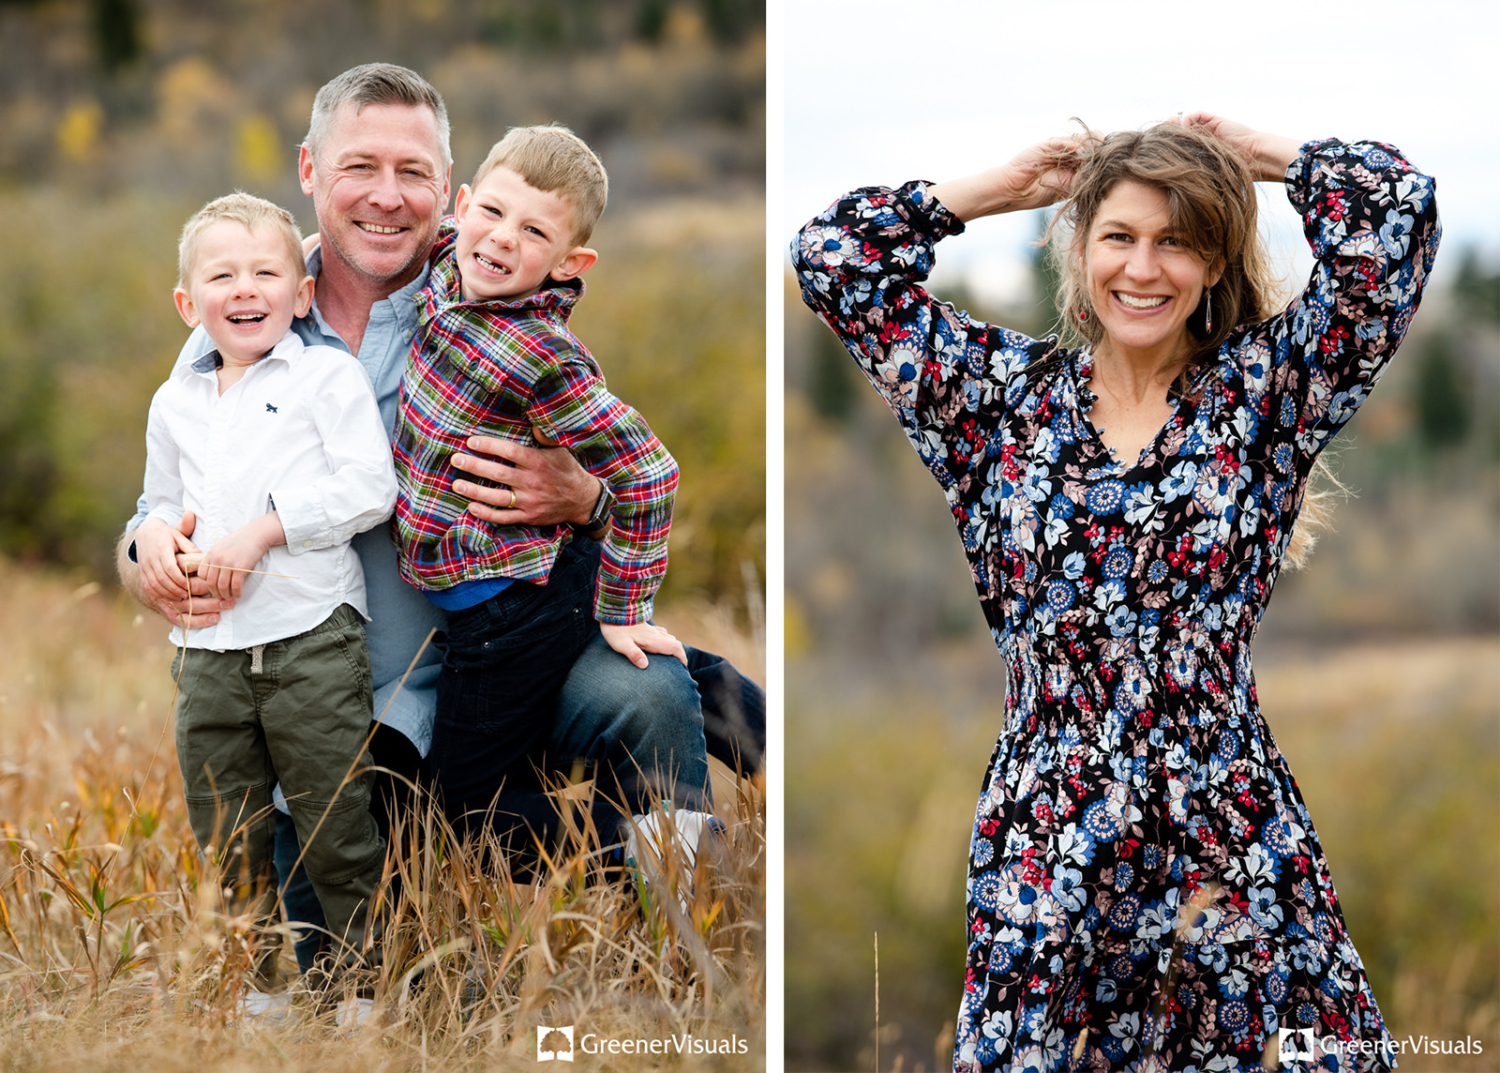 Greener-Visuals-Photography-Best-of-2020-Family-Portrait